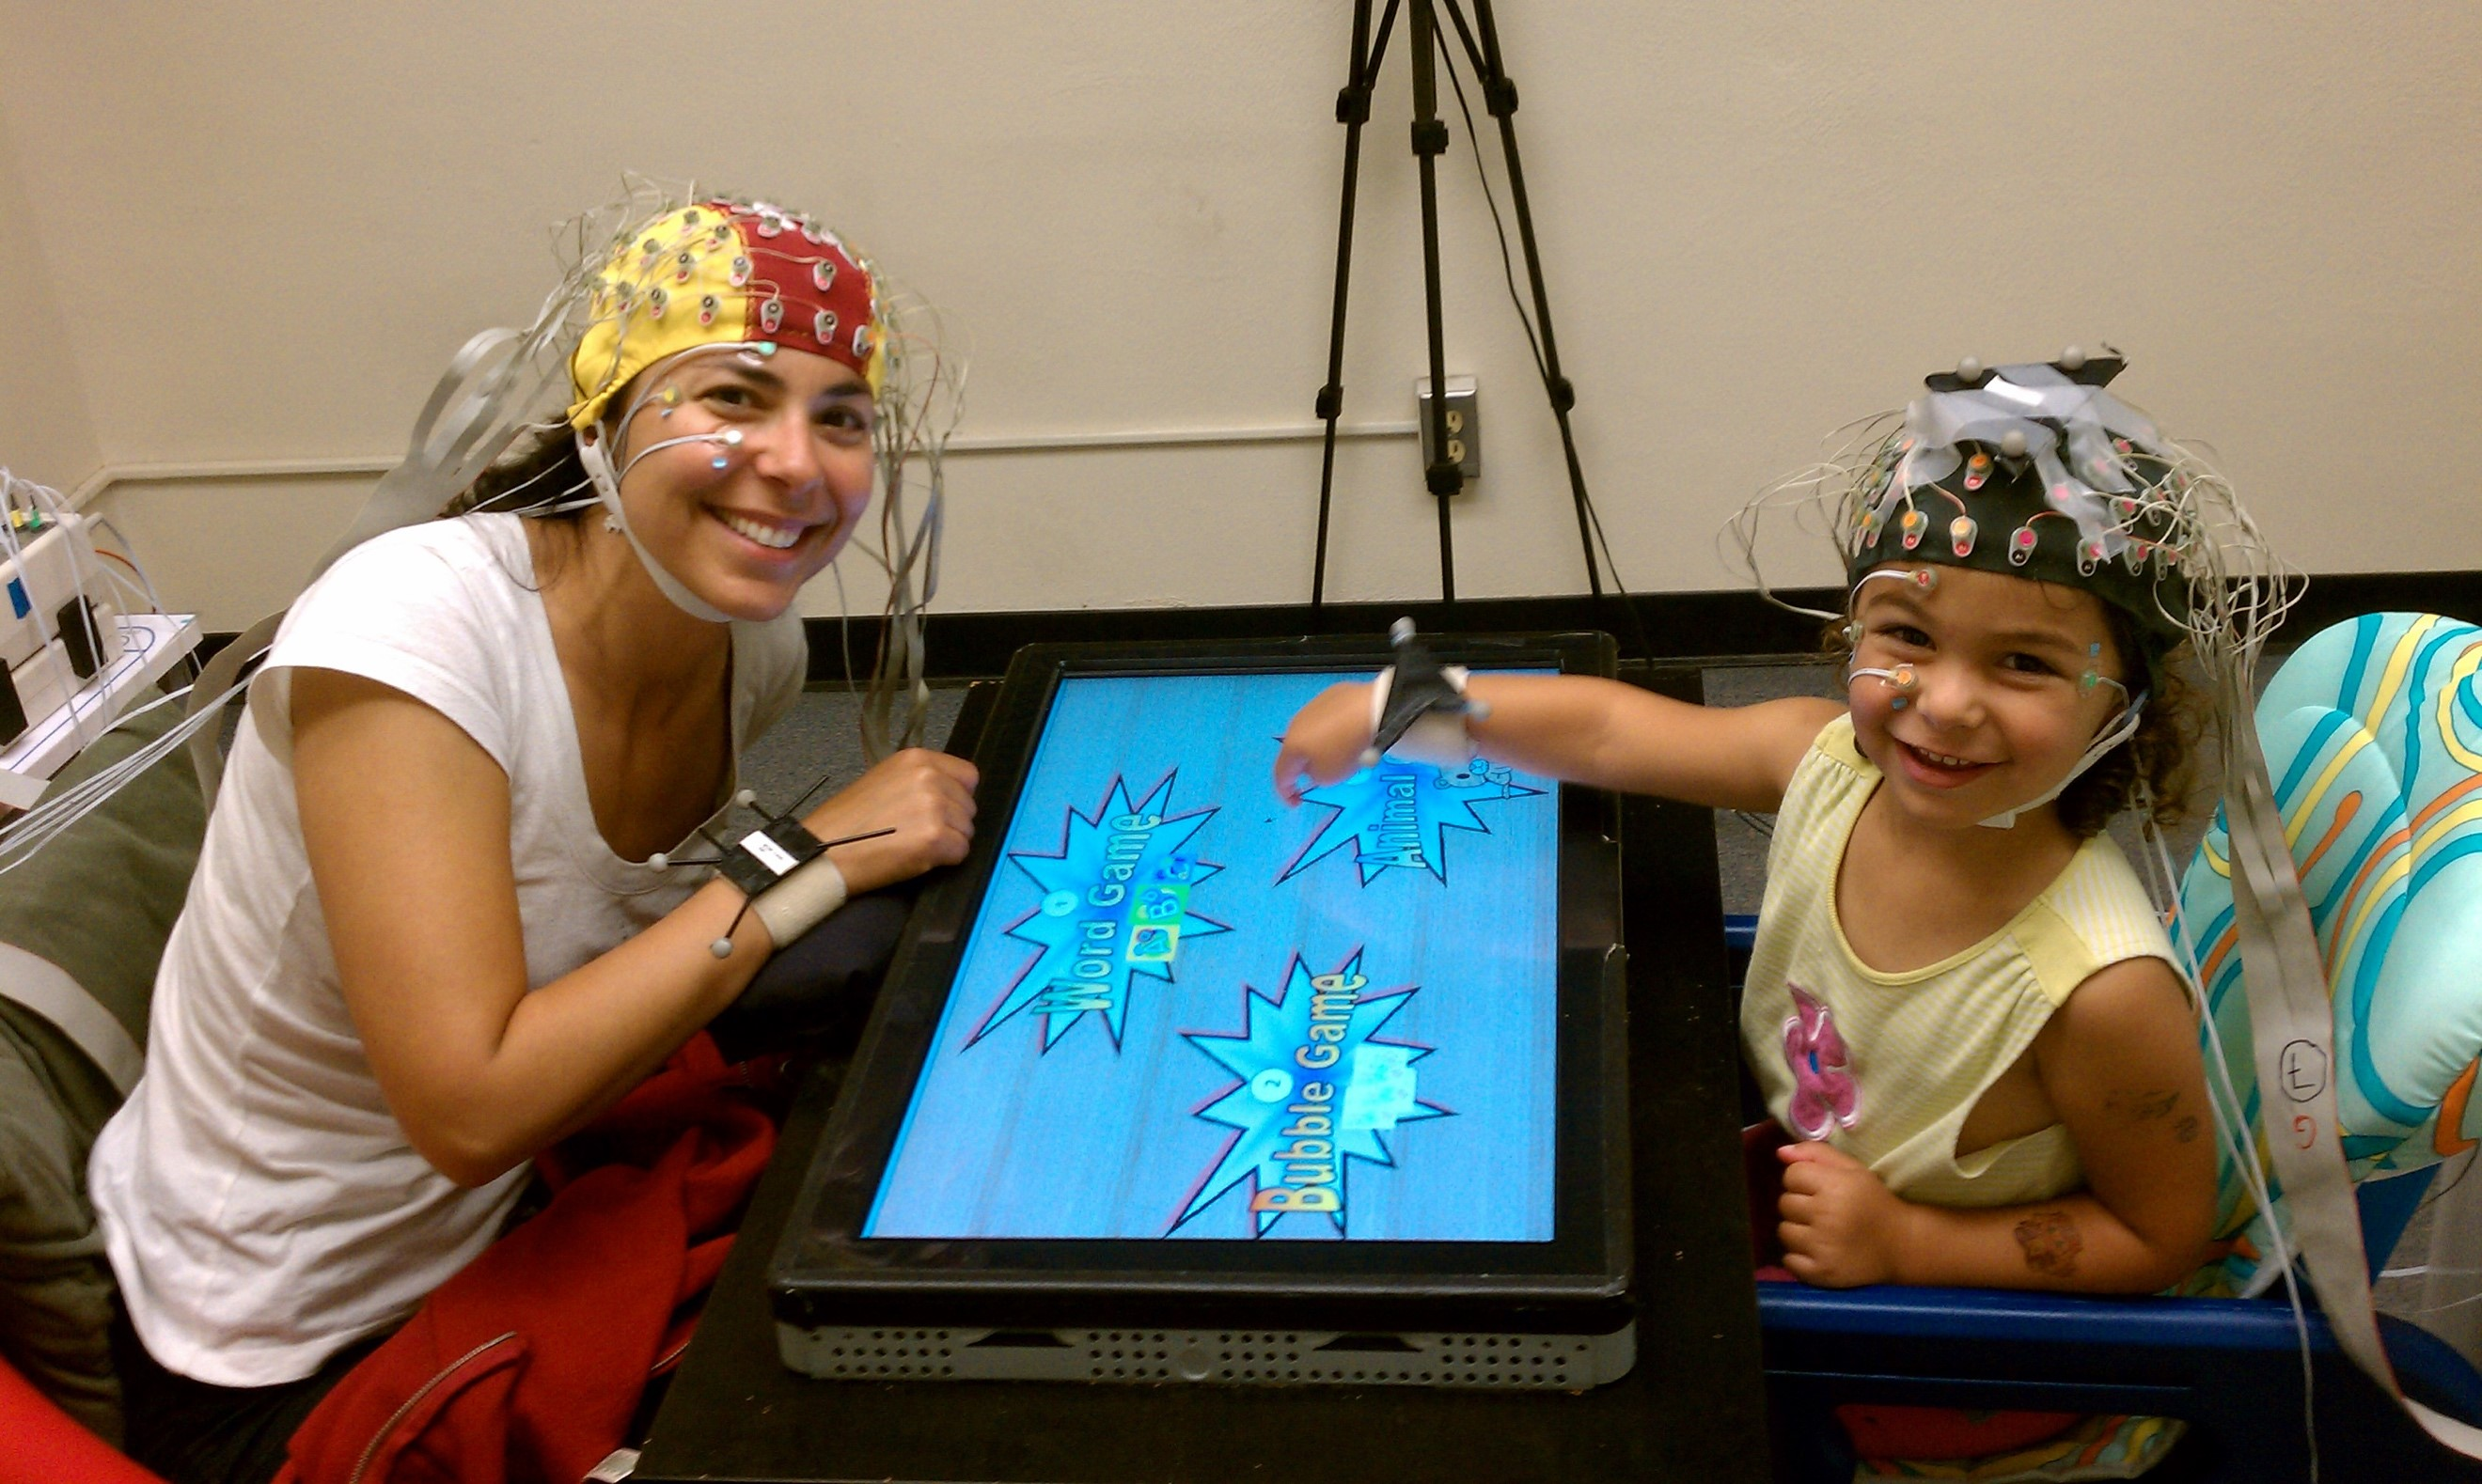 A toddler and parent play experimental games in a study of social skill learning - Cognitive Development Lab